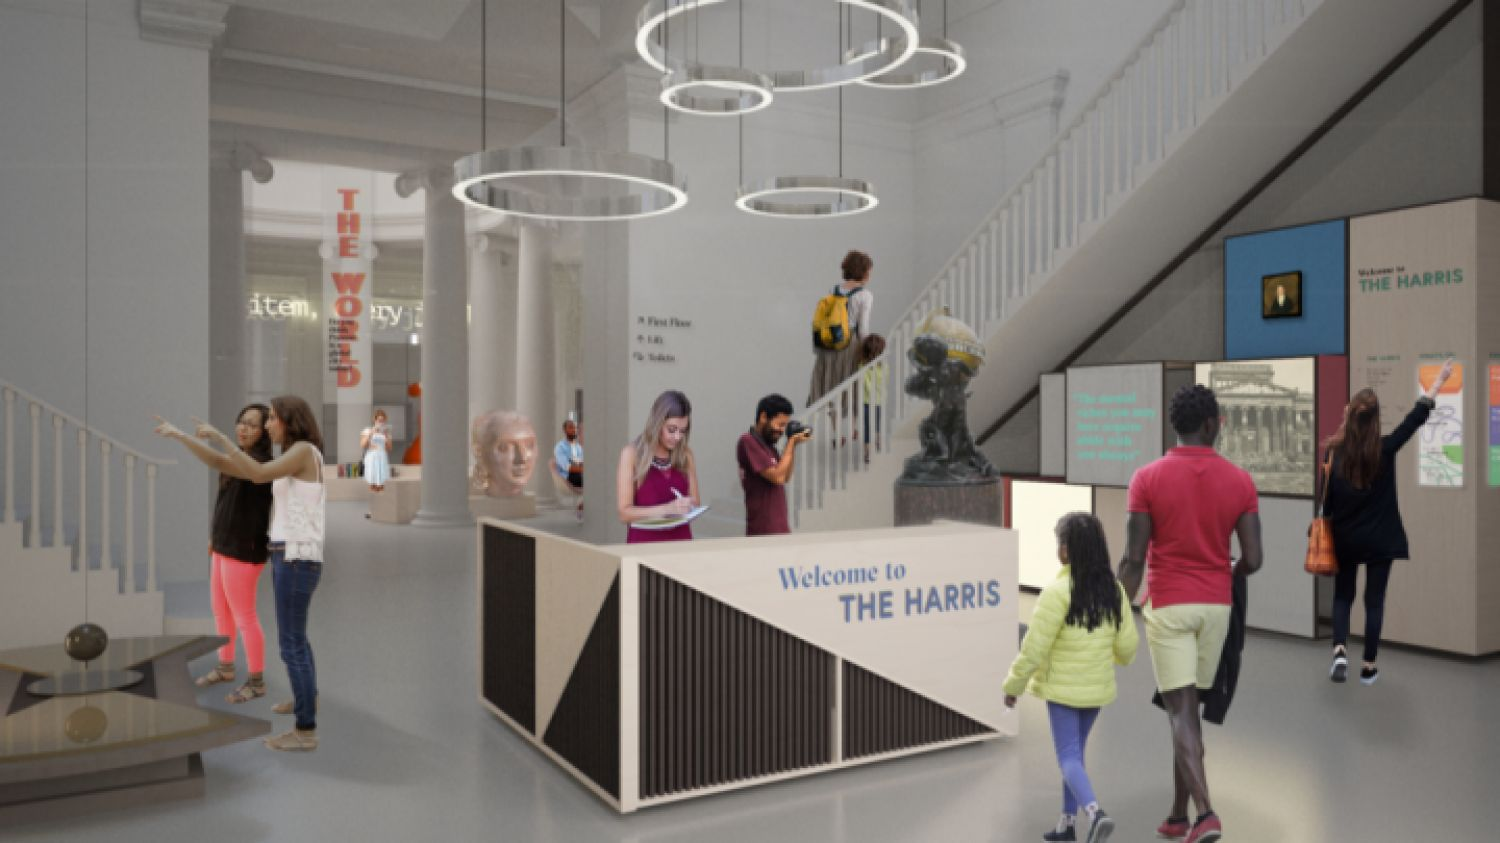 Harris Museum Undergoes Great Change and You Can Have Your Say